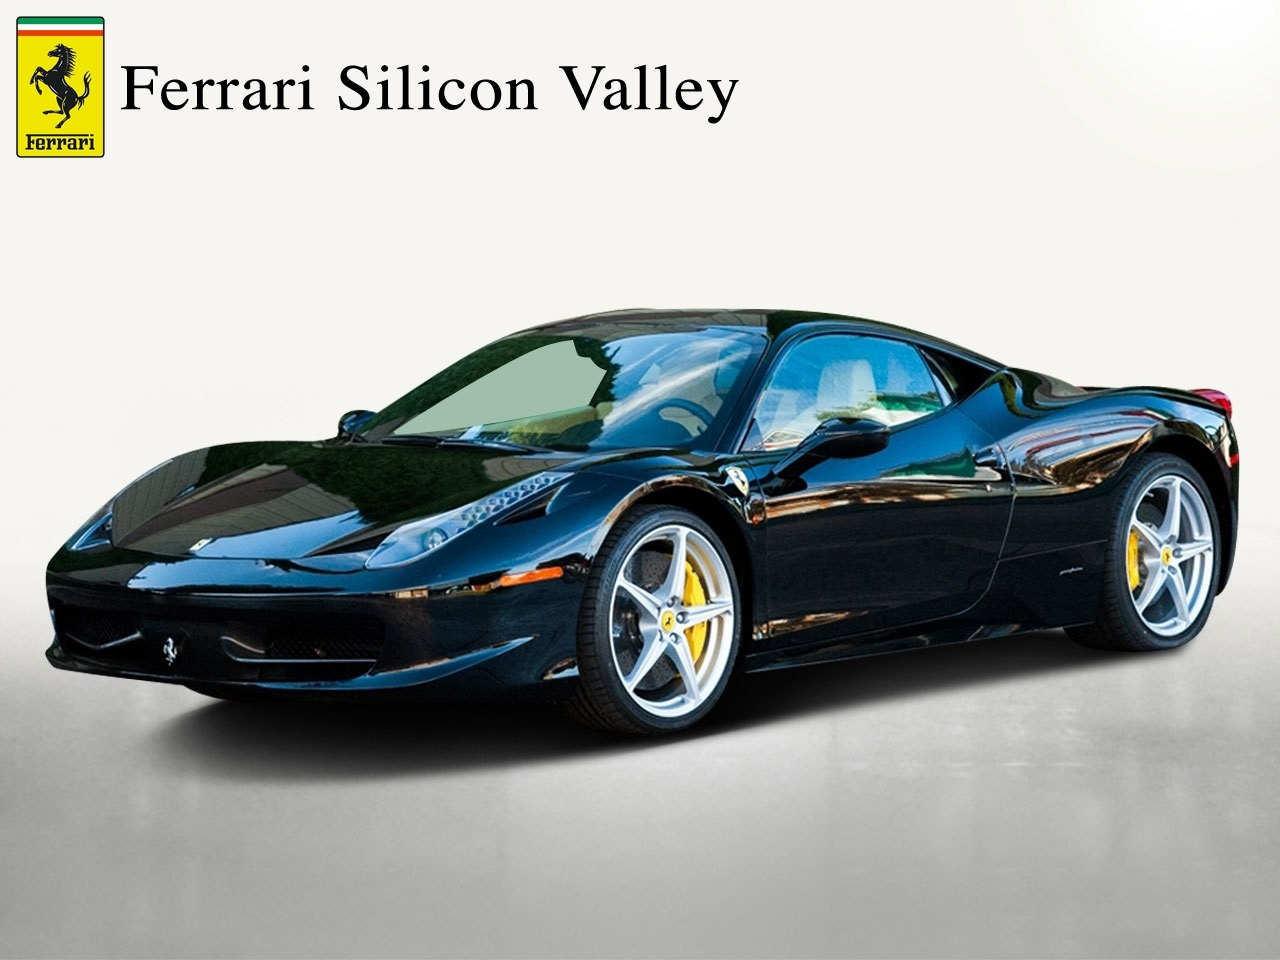 Used 2011 Ferrari 458 Italia Coupe For Sale Beverly Hills, CA